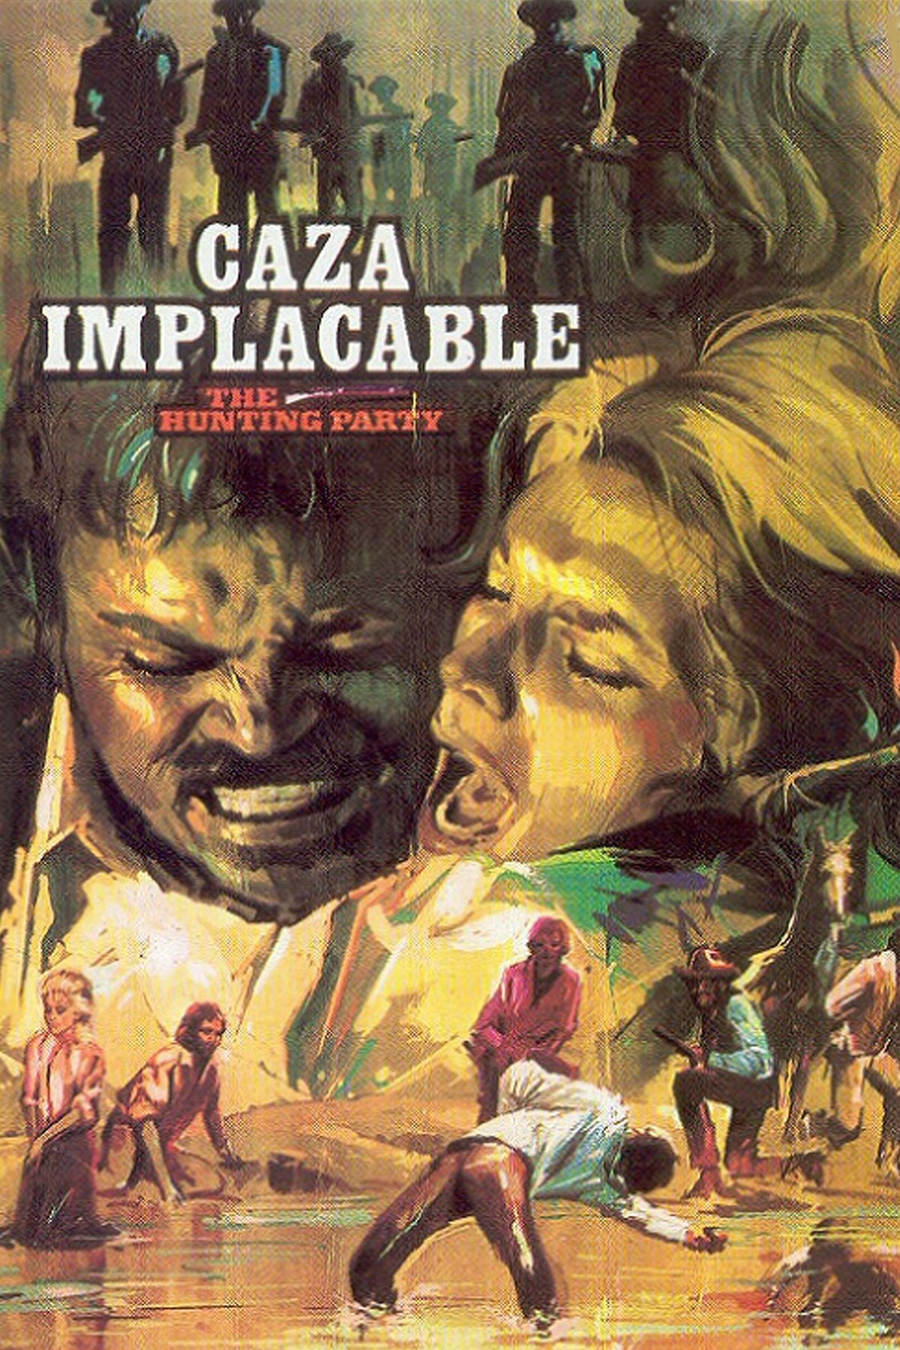 Caza implacable